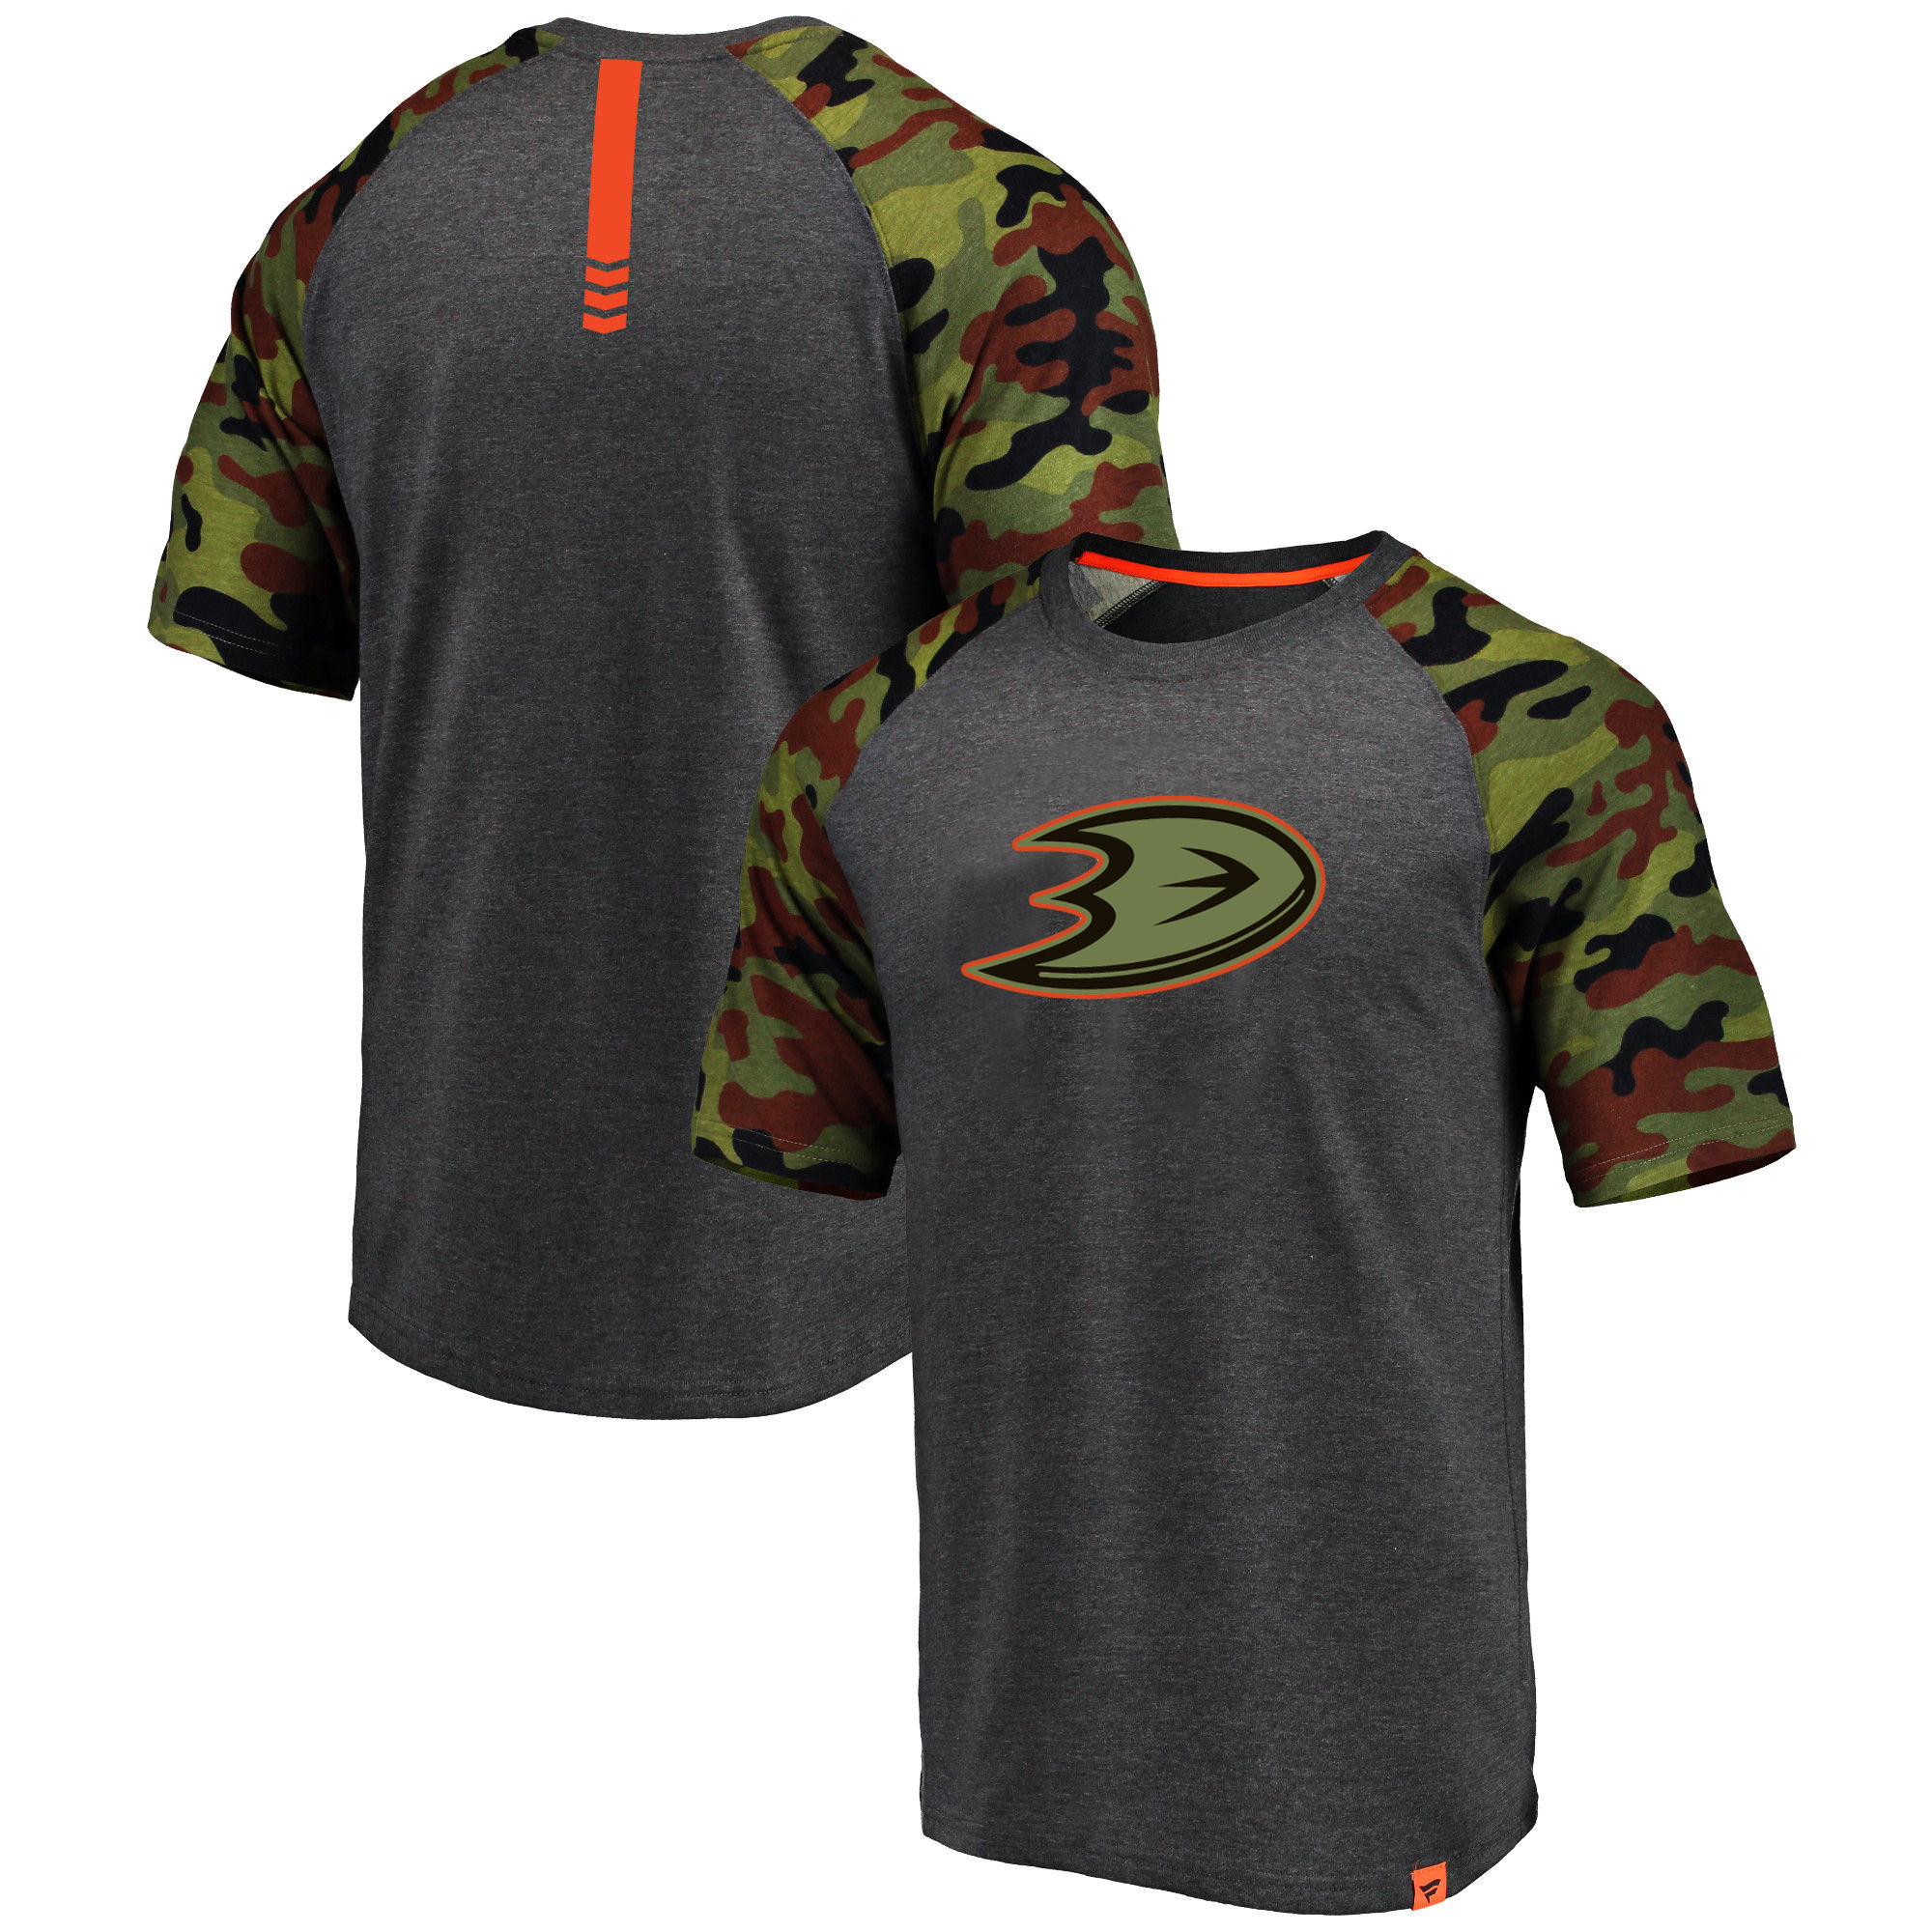 Anaheim Ducks Fanatics Branded Heathered Gray/Camo Recon Camo Raglan T-Shirt